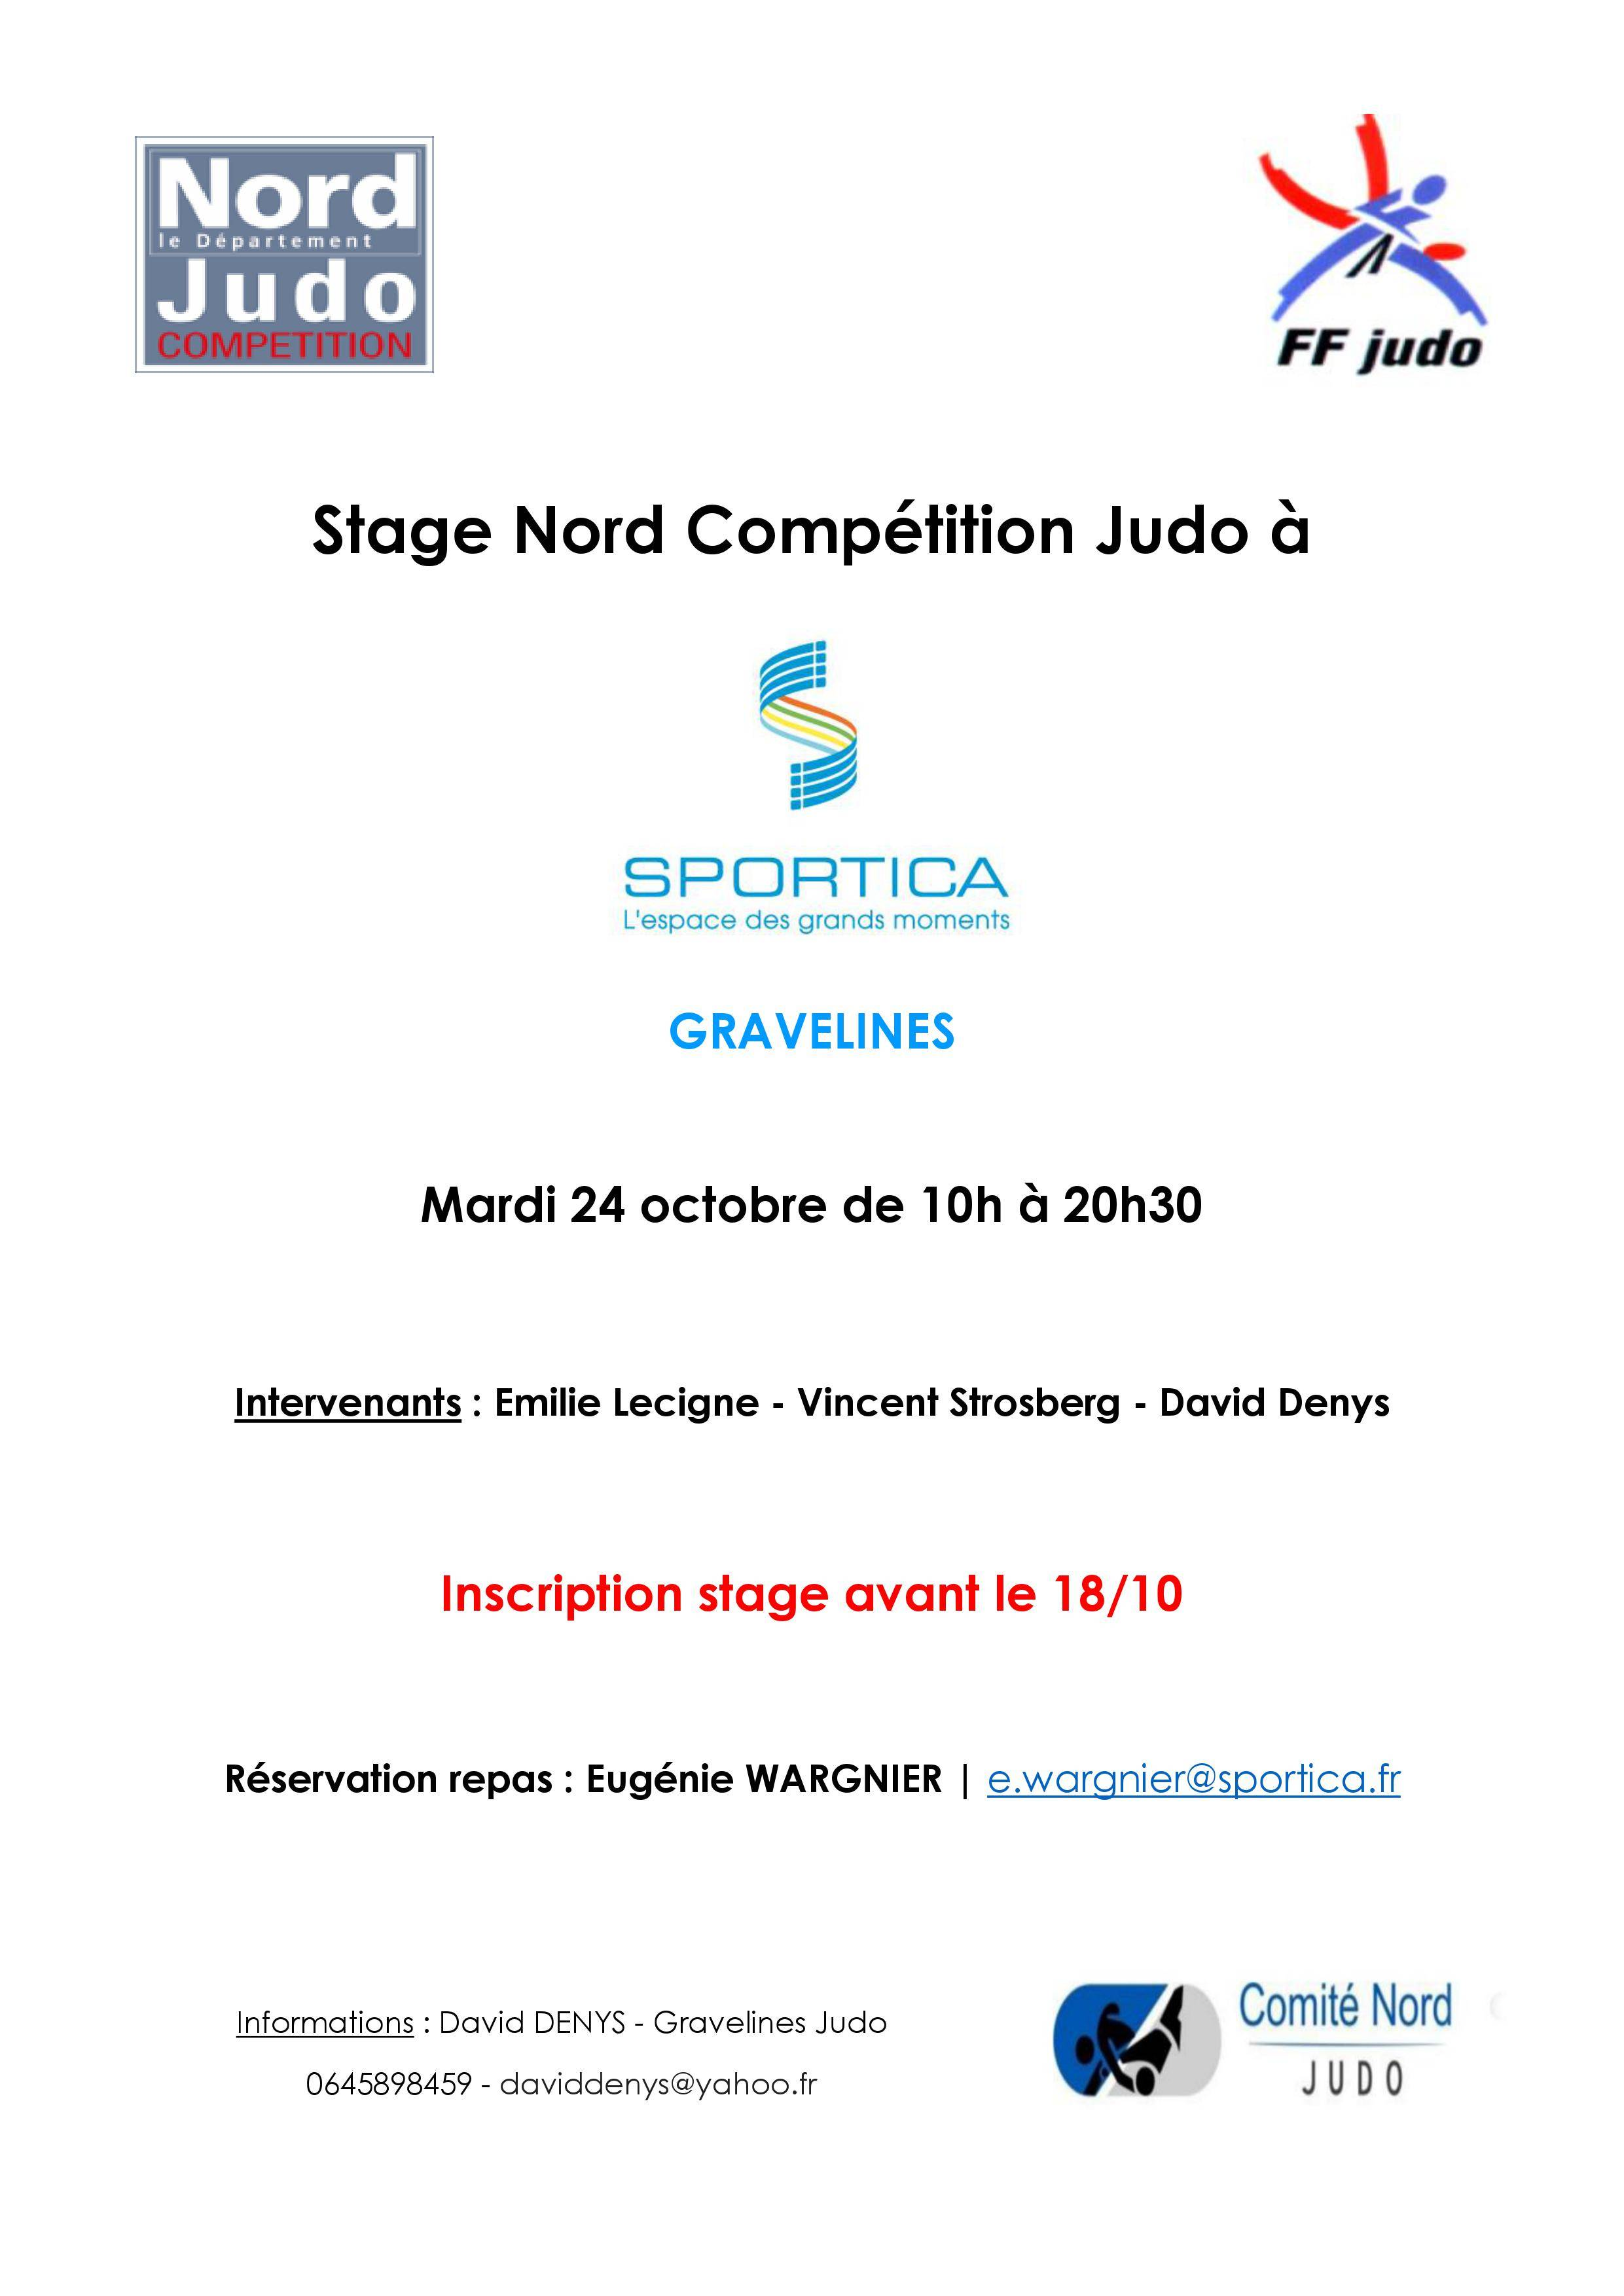 Stage Nord Compétition Judo